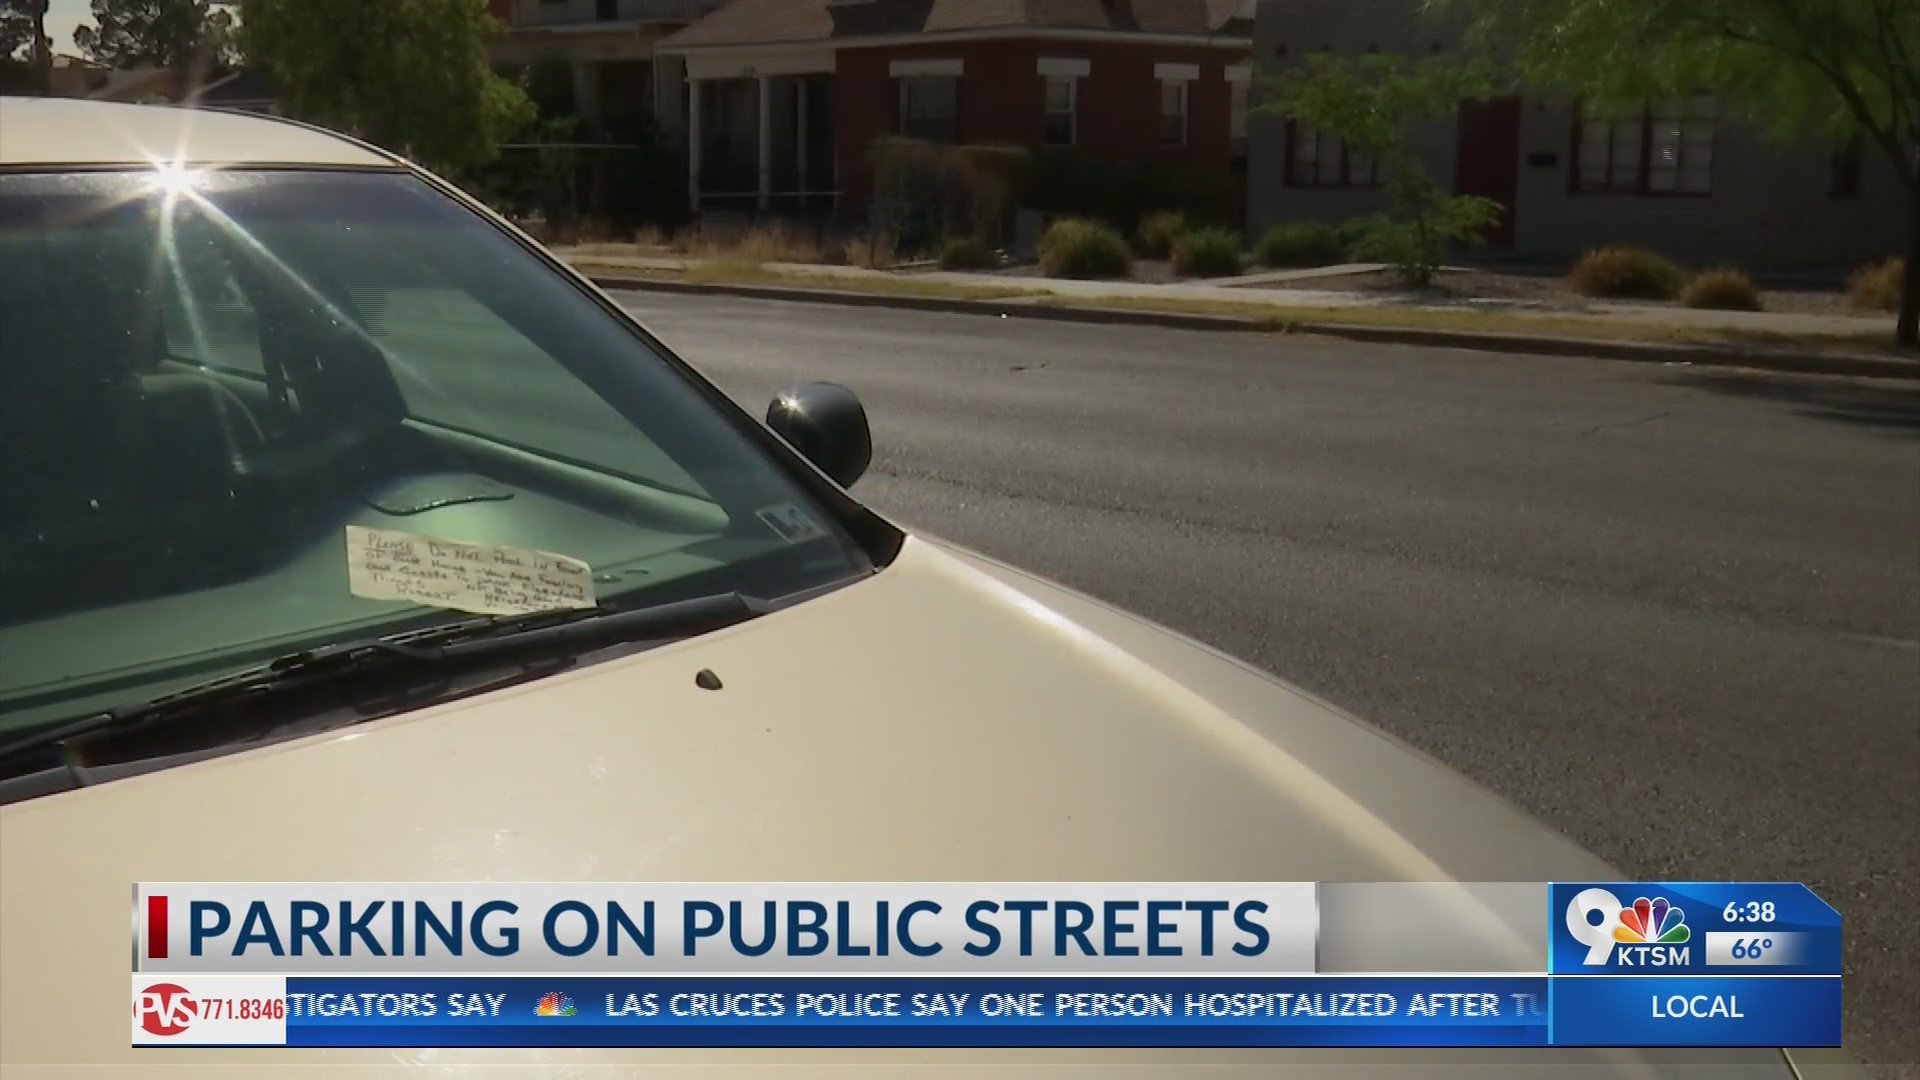 Neighbors dispute over parking in Central El Paso